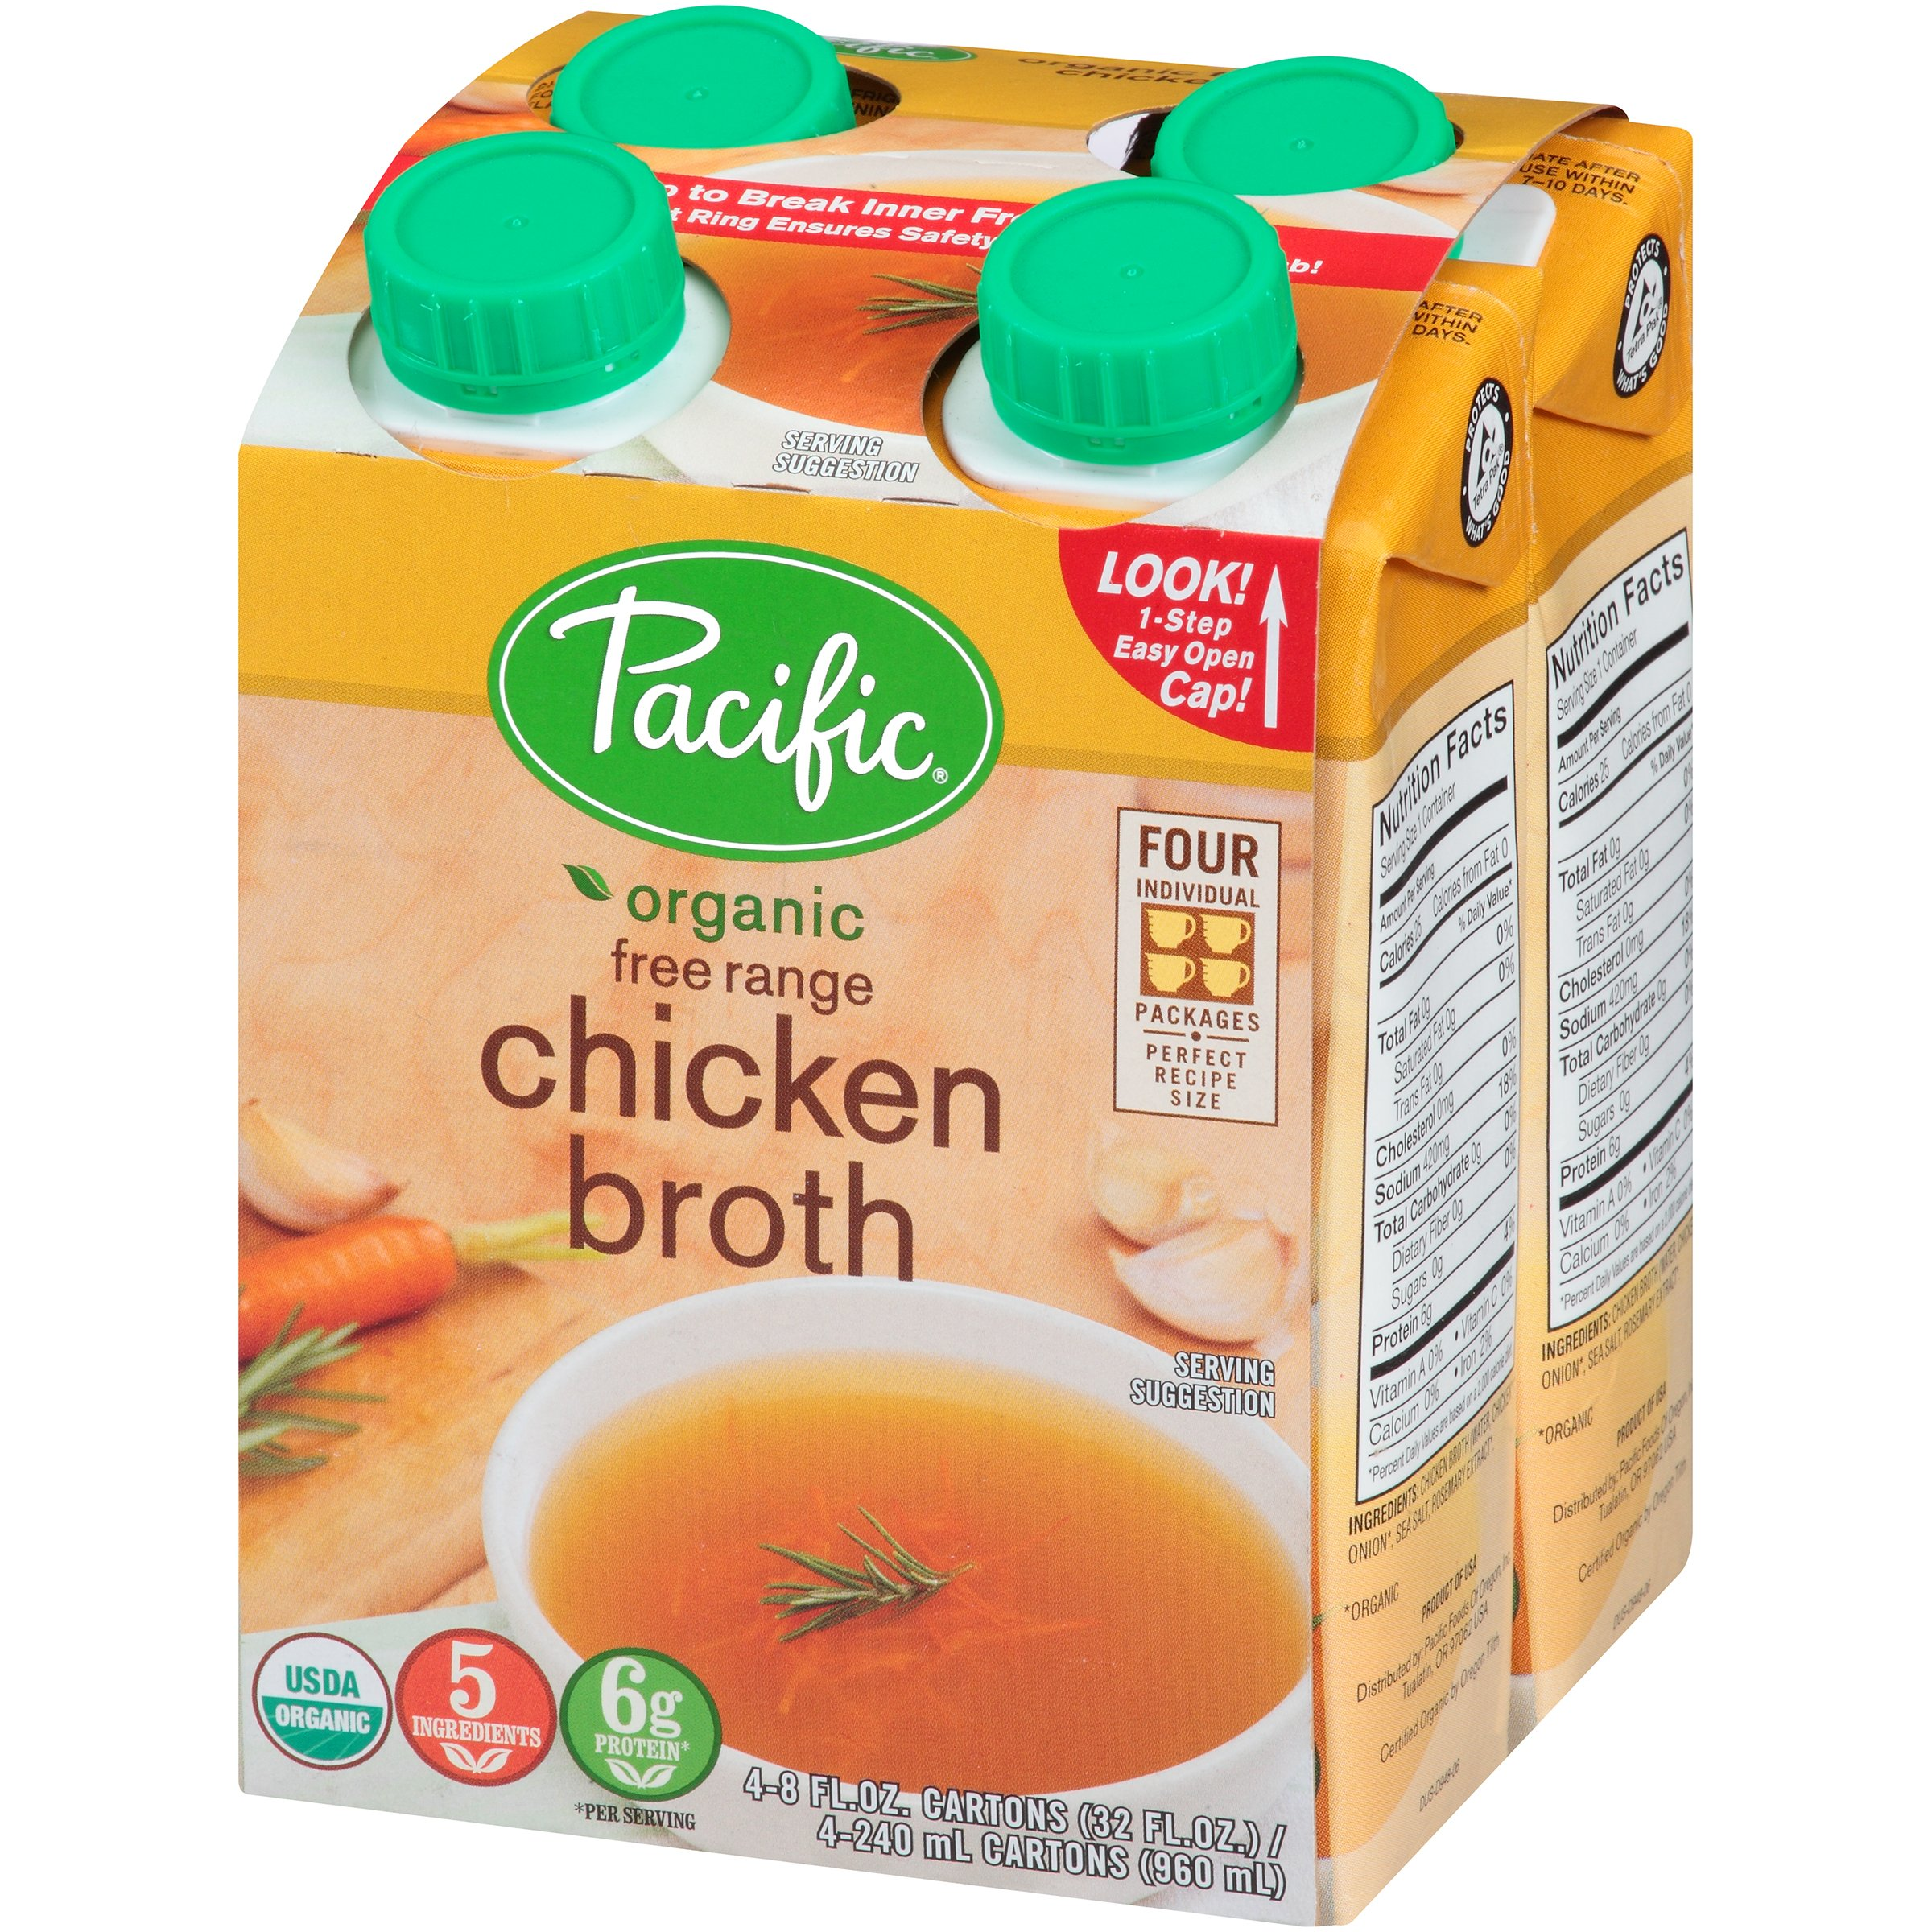 Pacific Natural Chicken Broth (6x4x8 Oz) by Pacific Natural Foods (Image #3)